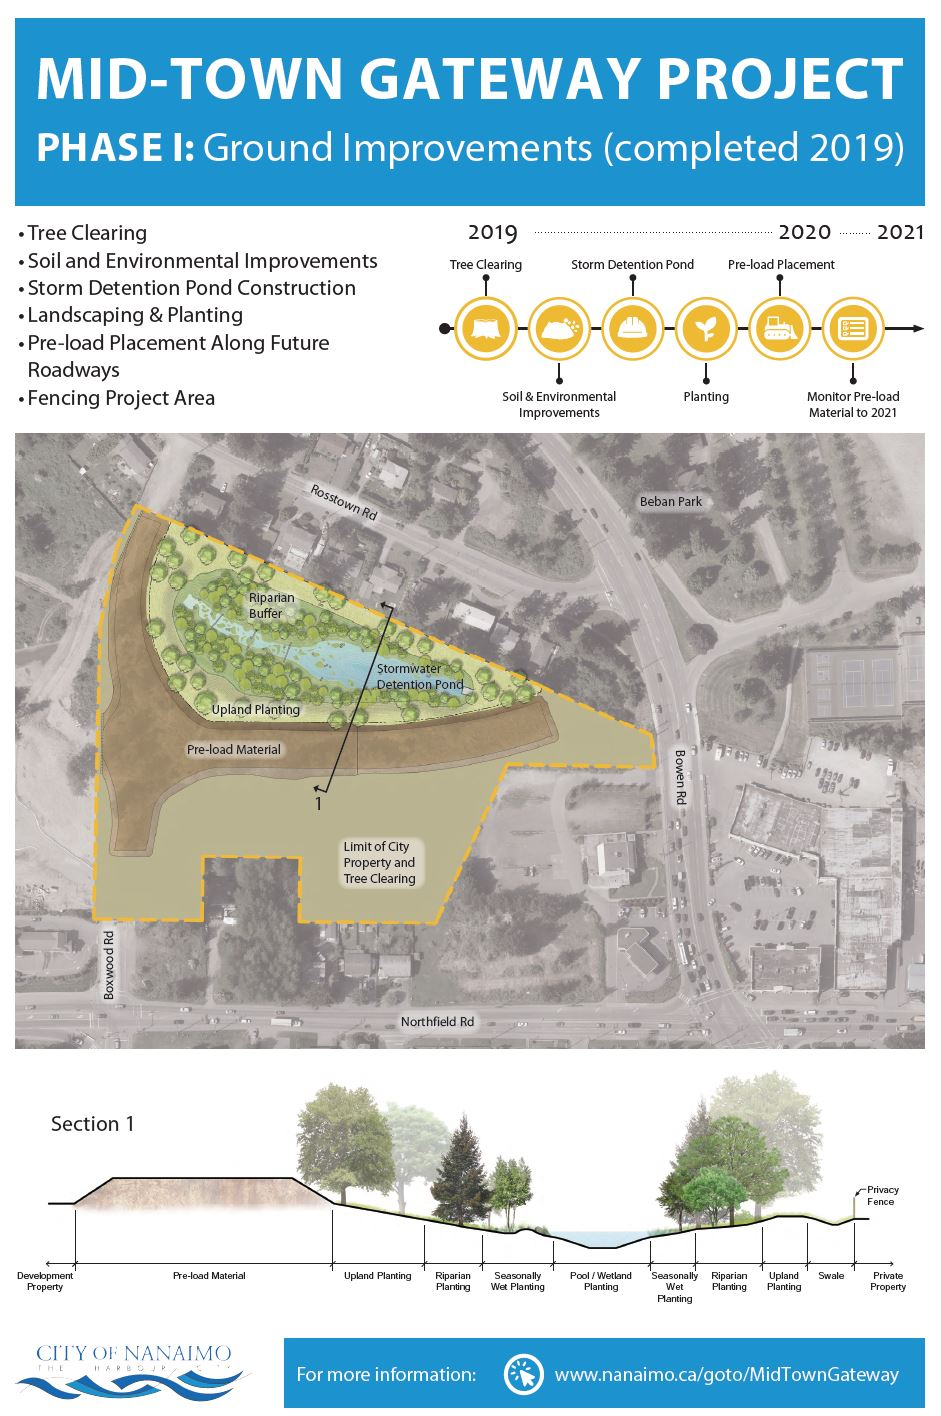 City of Nanaimo - Boxwood Connector or Midtown Gateway Project